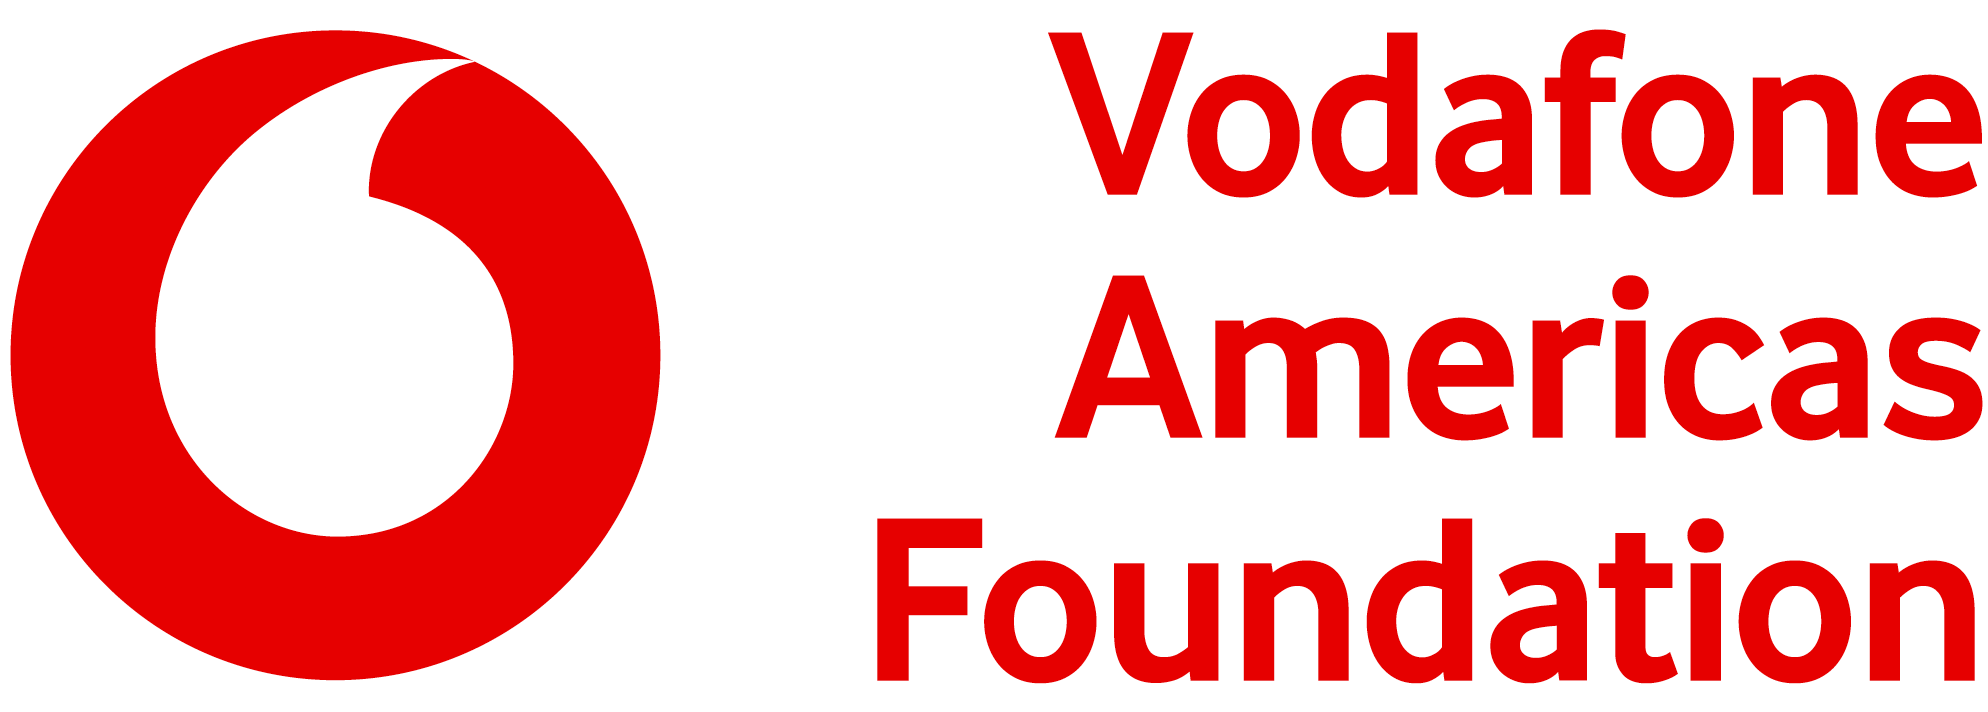 Solve at MIT 2019: 103 Vodafone Americas Foundation